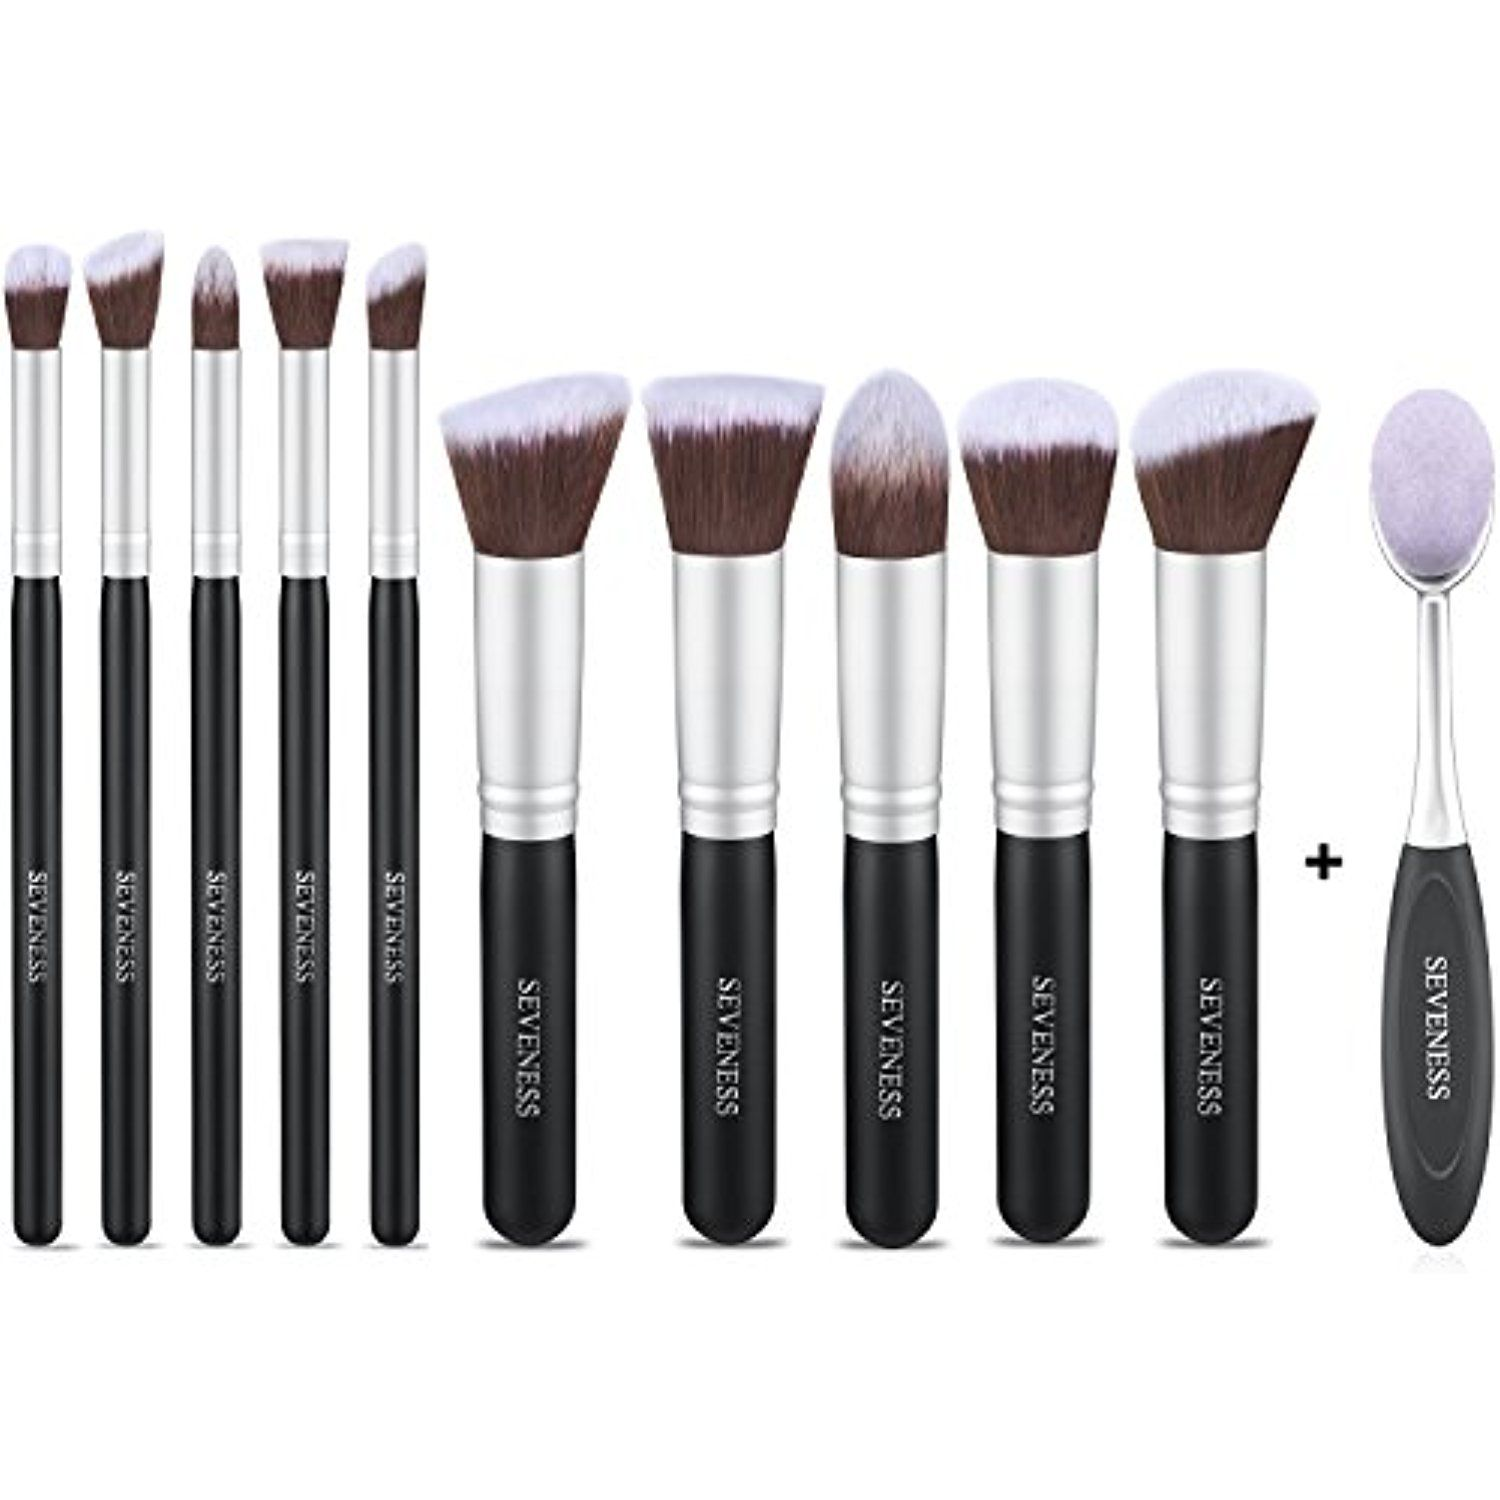 Makeup Brushes Sets, 11pcs Synthetic Kabuki Makeup